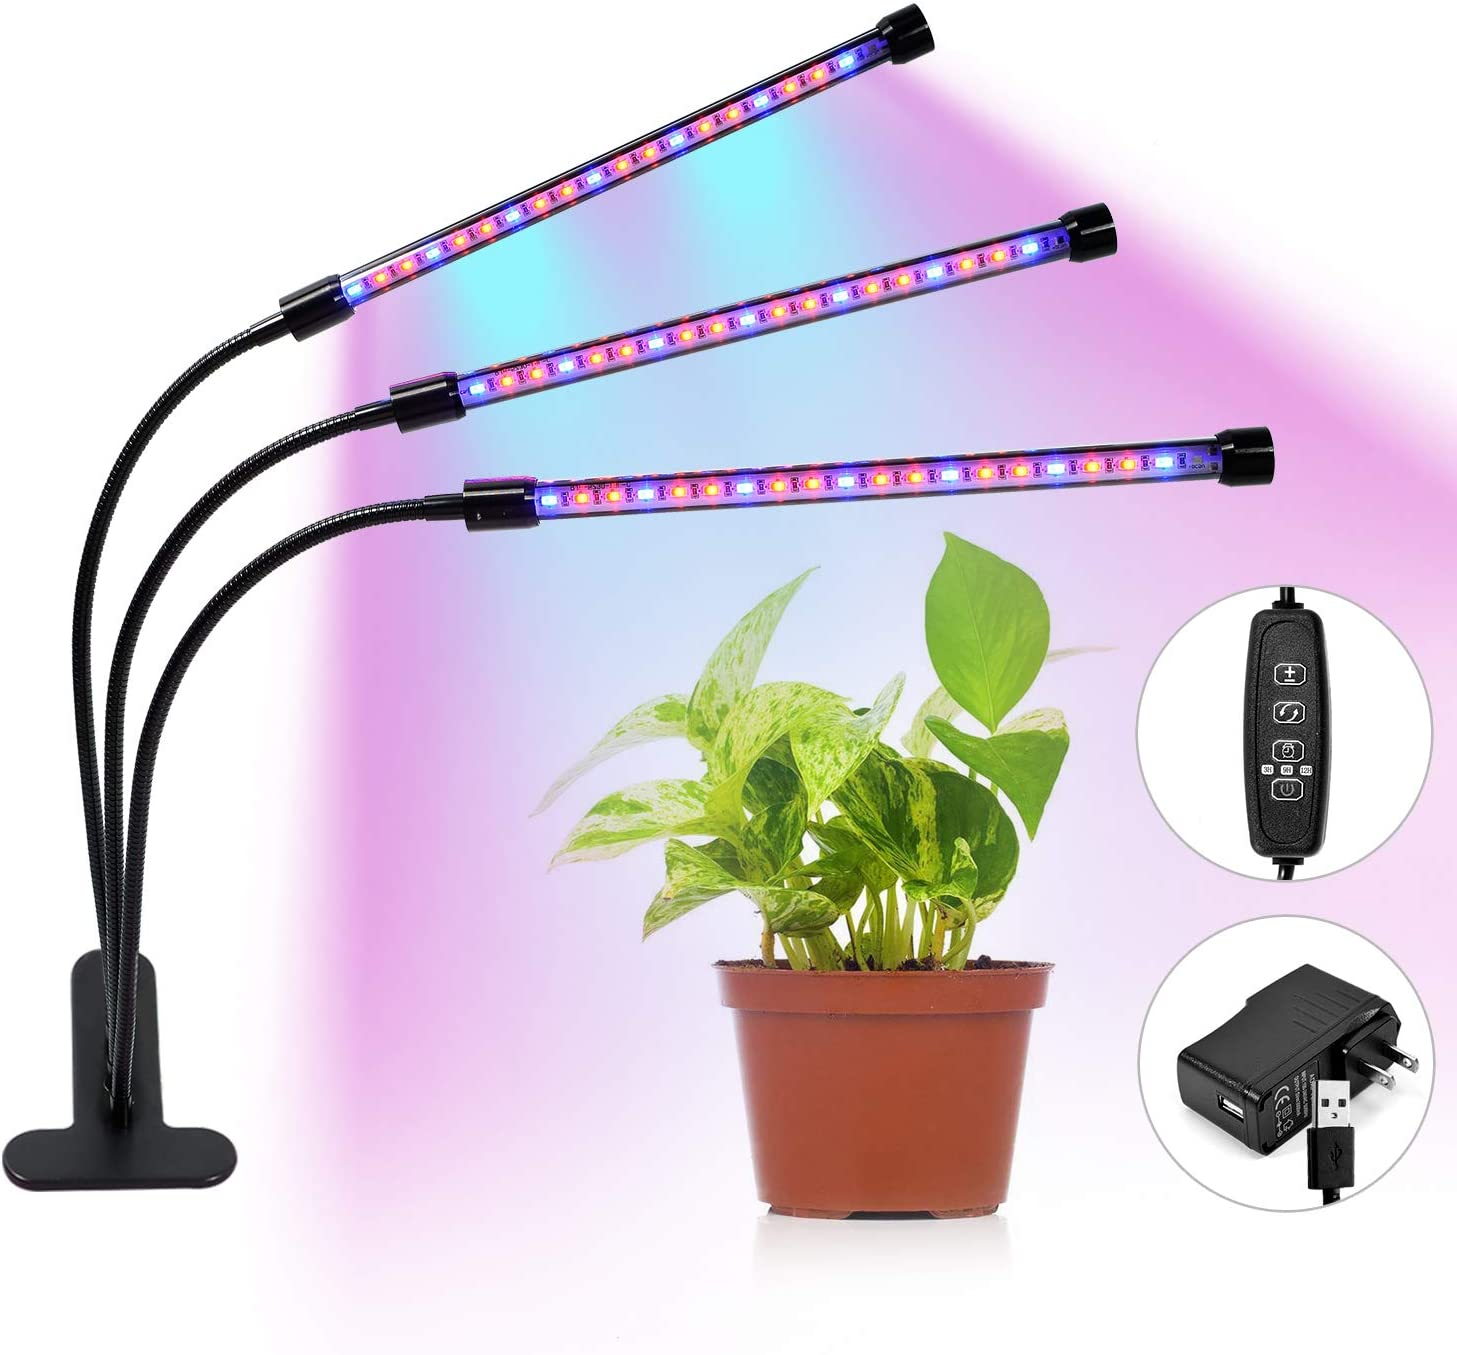 Gienar Grow Light with 3 9 12H Timer and Memory Function, 3 Heads 27W 57 LED Grow Lamp for Indoor Plants with 5 Dimmable Levels and 3 Switch Modes, Adjustable Gooseneck USB Adapter Included